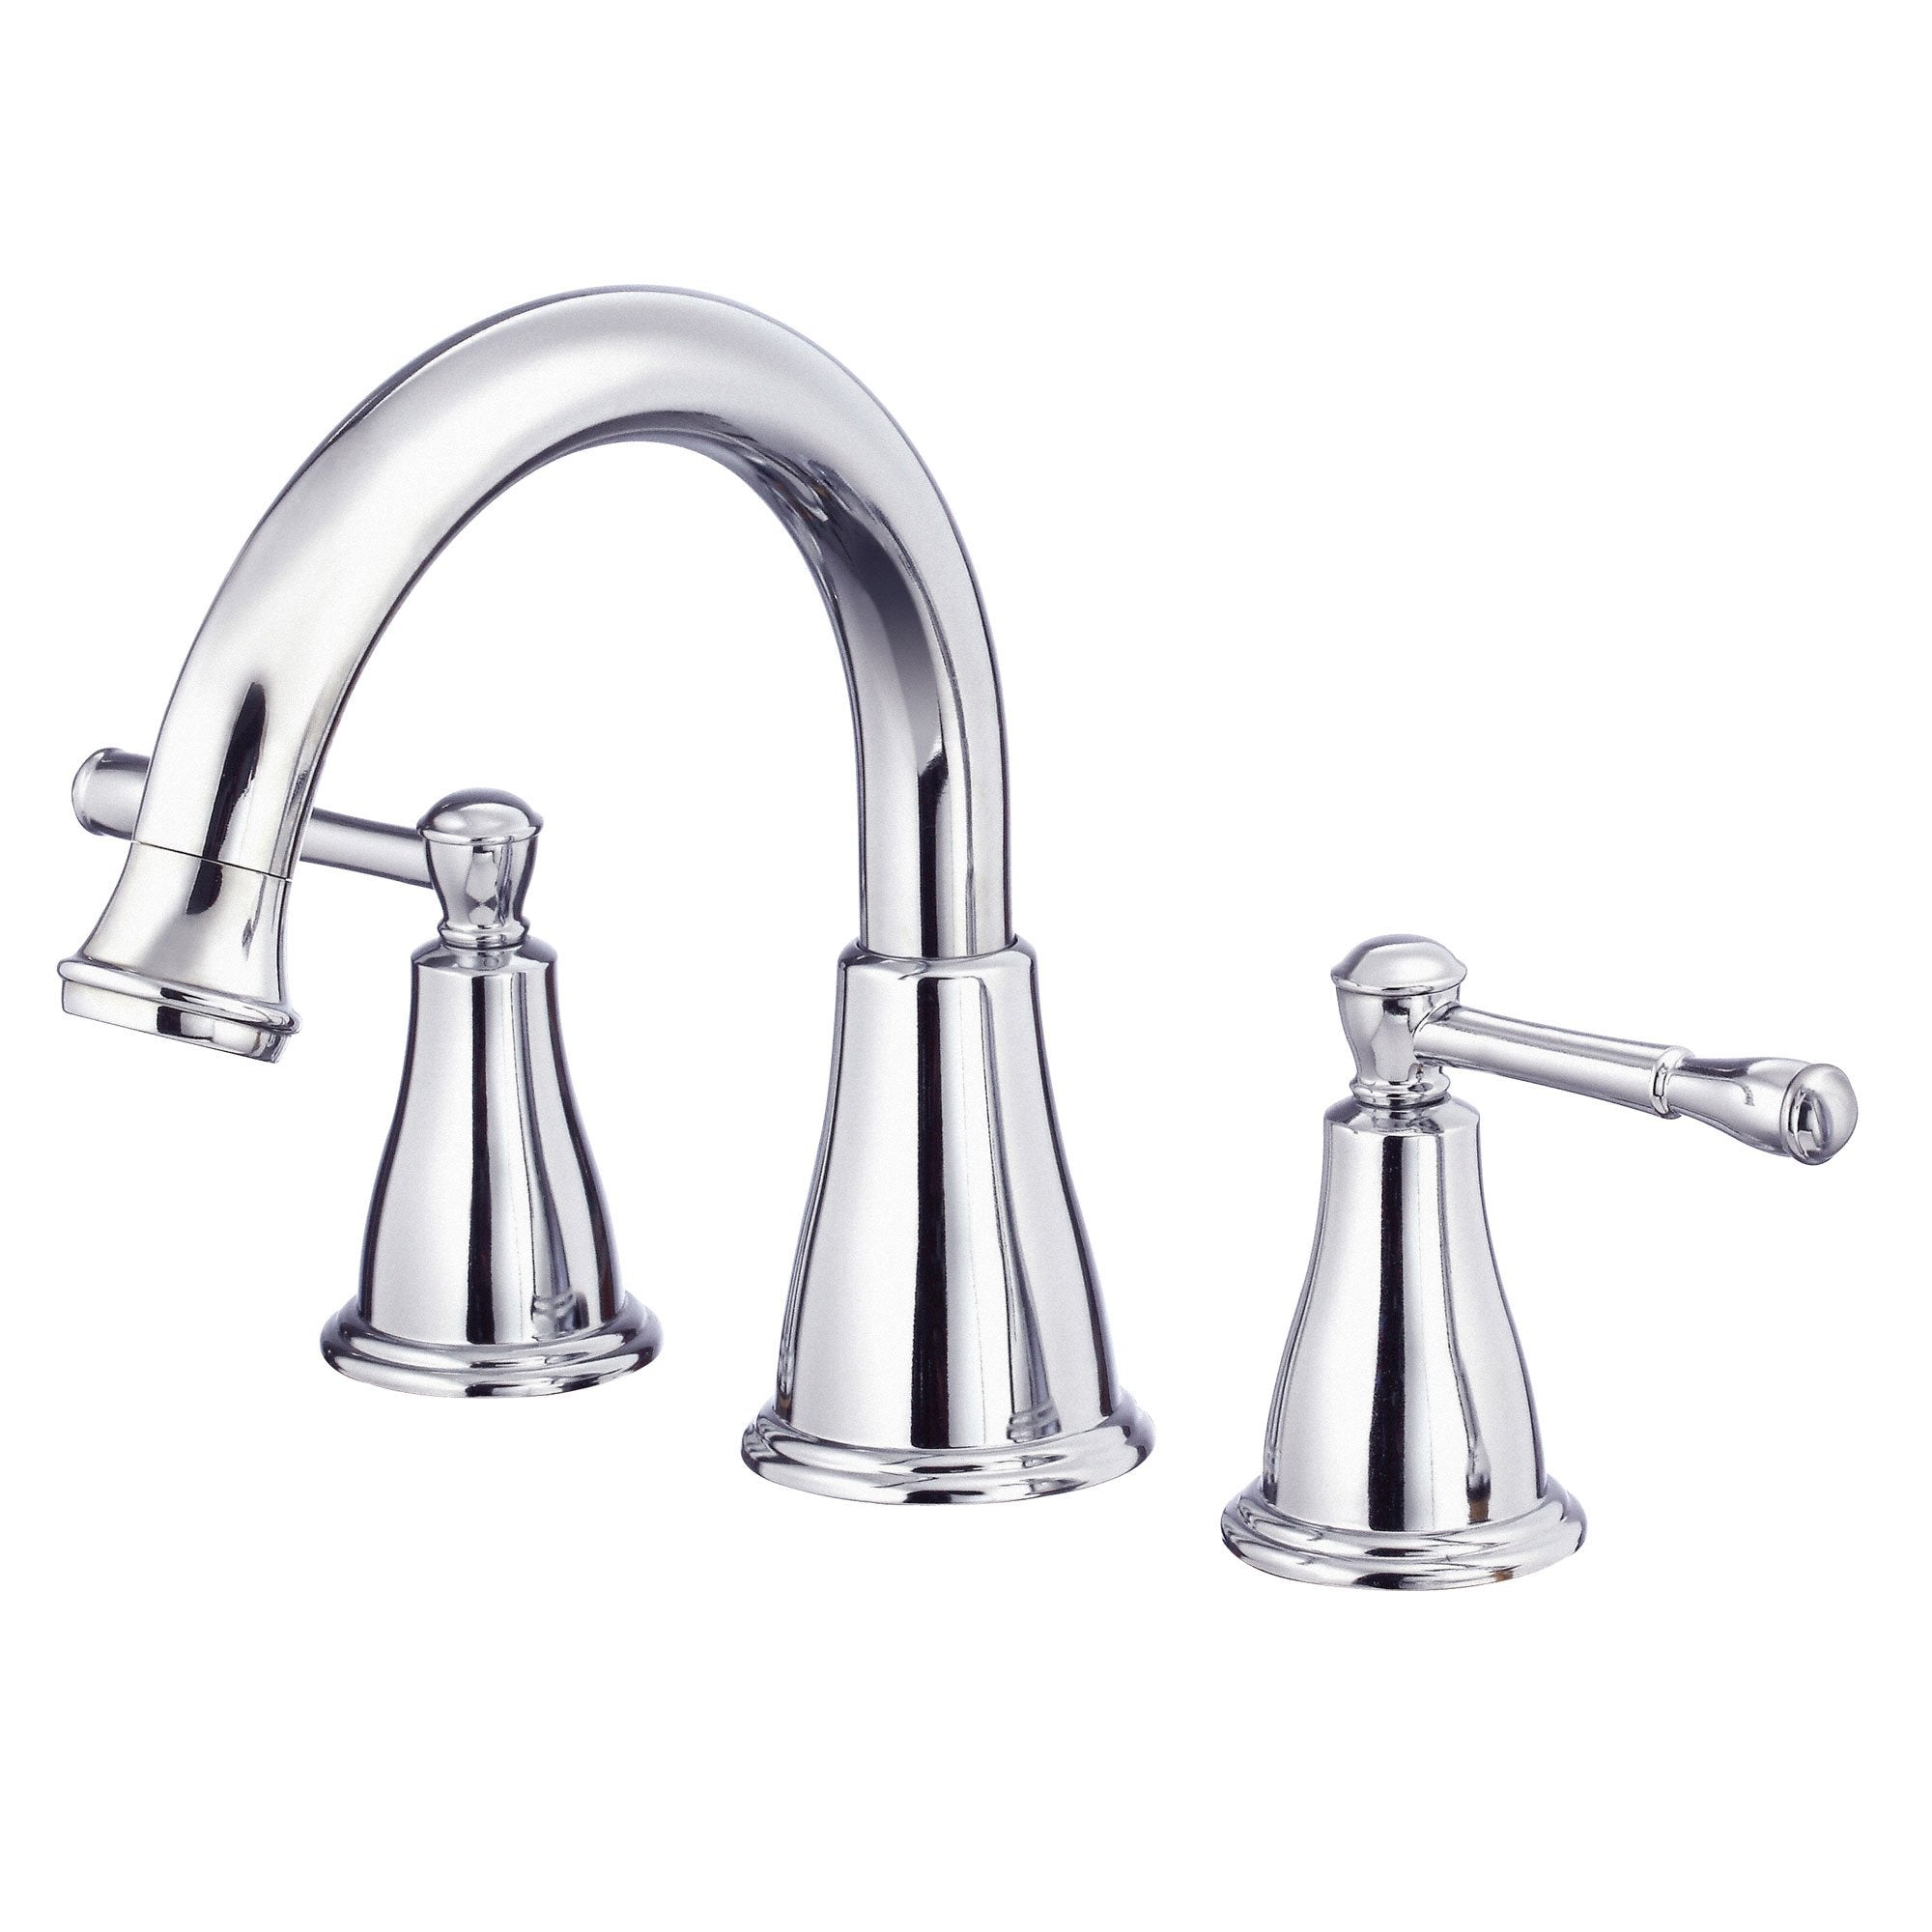 Danze Eastham Chrome High Volume Roman Bathtub Filler Faucet INCLUDES Rough-in Valve